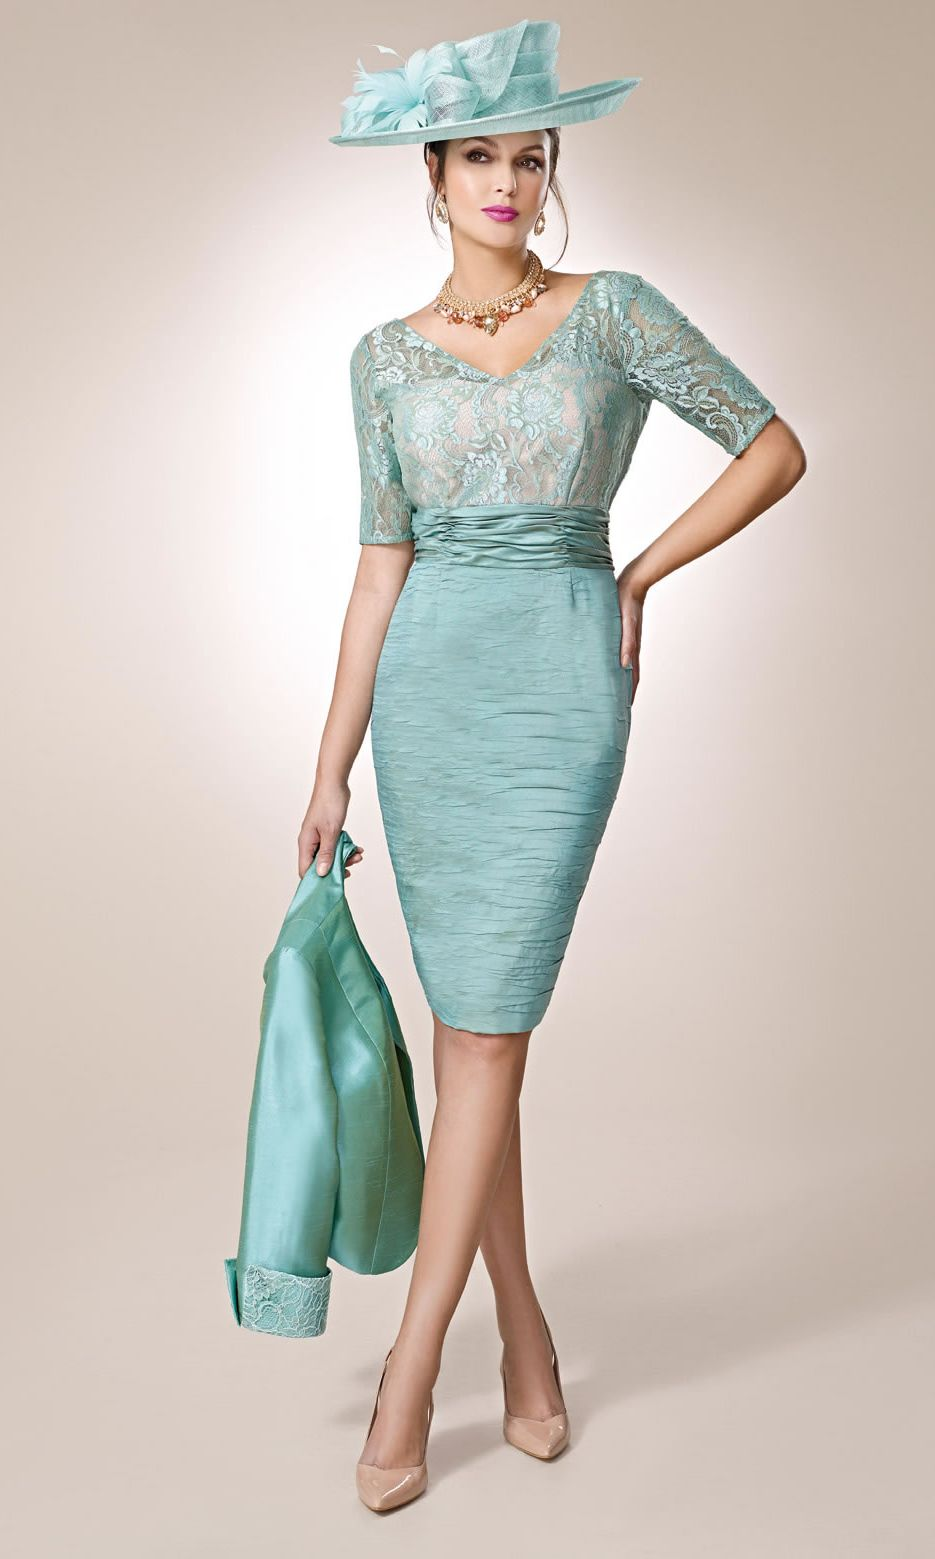 Zeila mother of the bride dress 3019196 | Sema | Pinterest | Bride ...